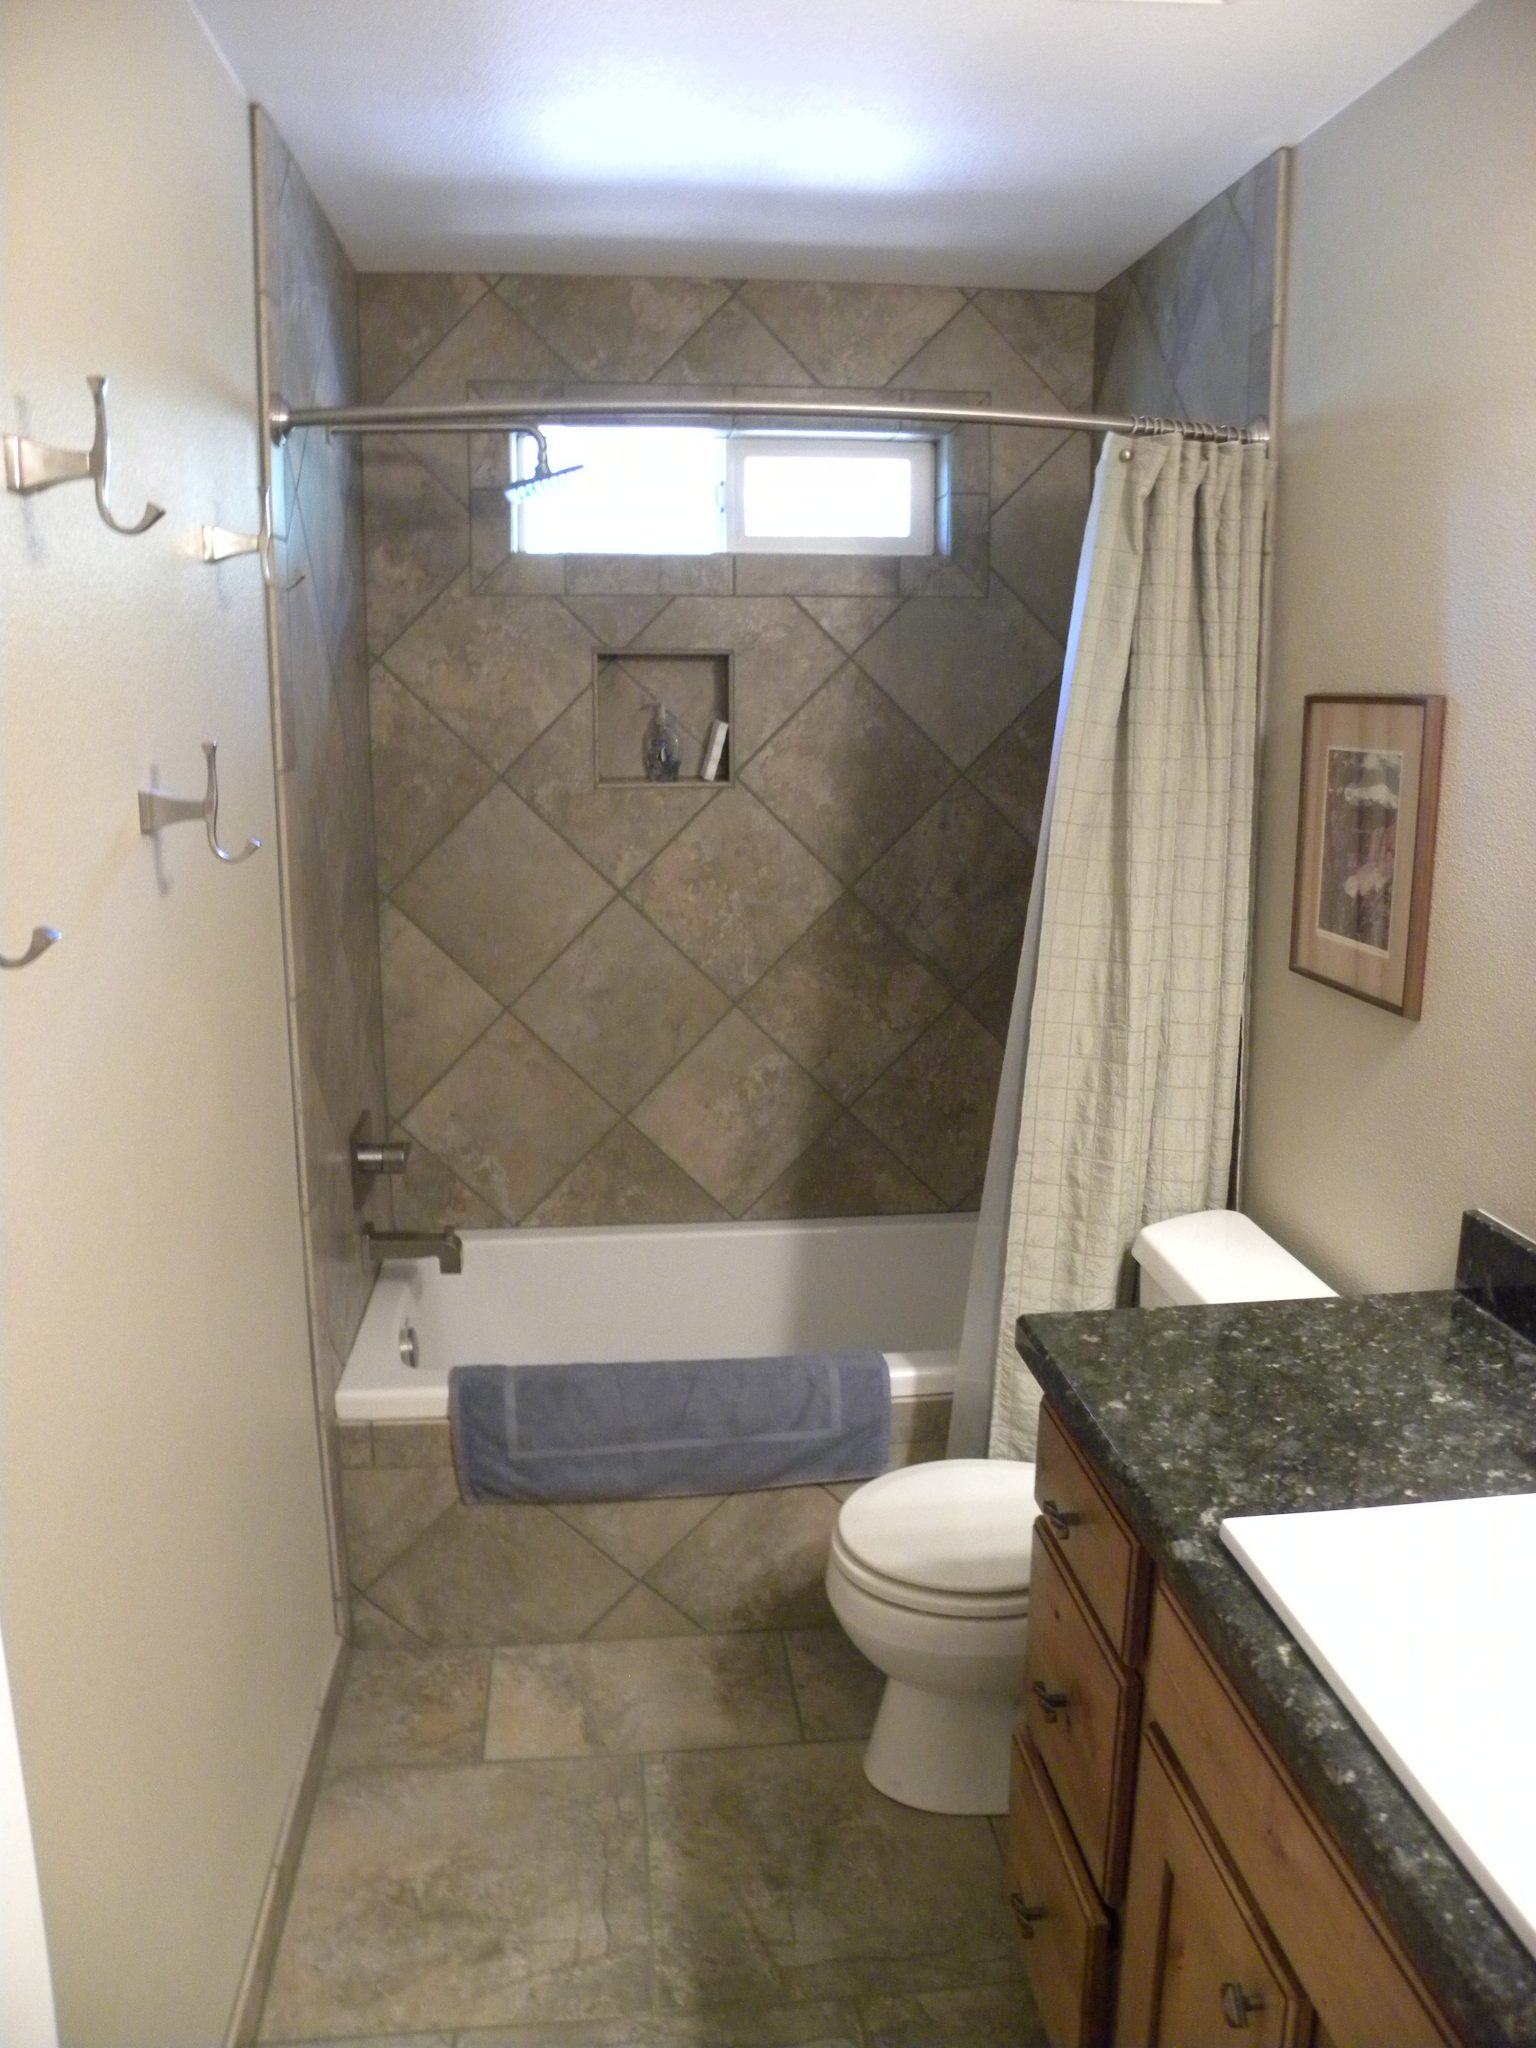 Interior shot of a custom designed bathroom with gray tiling and granite countertops